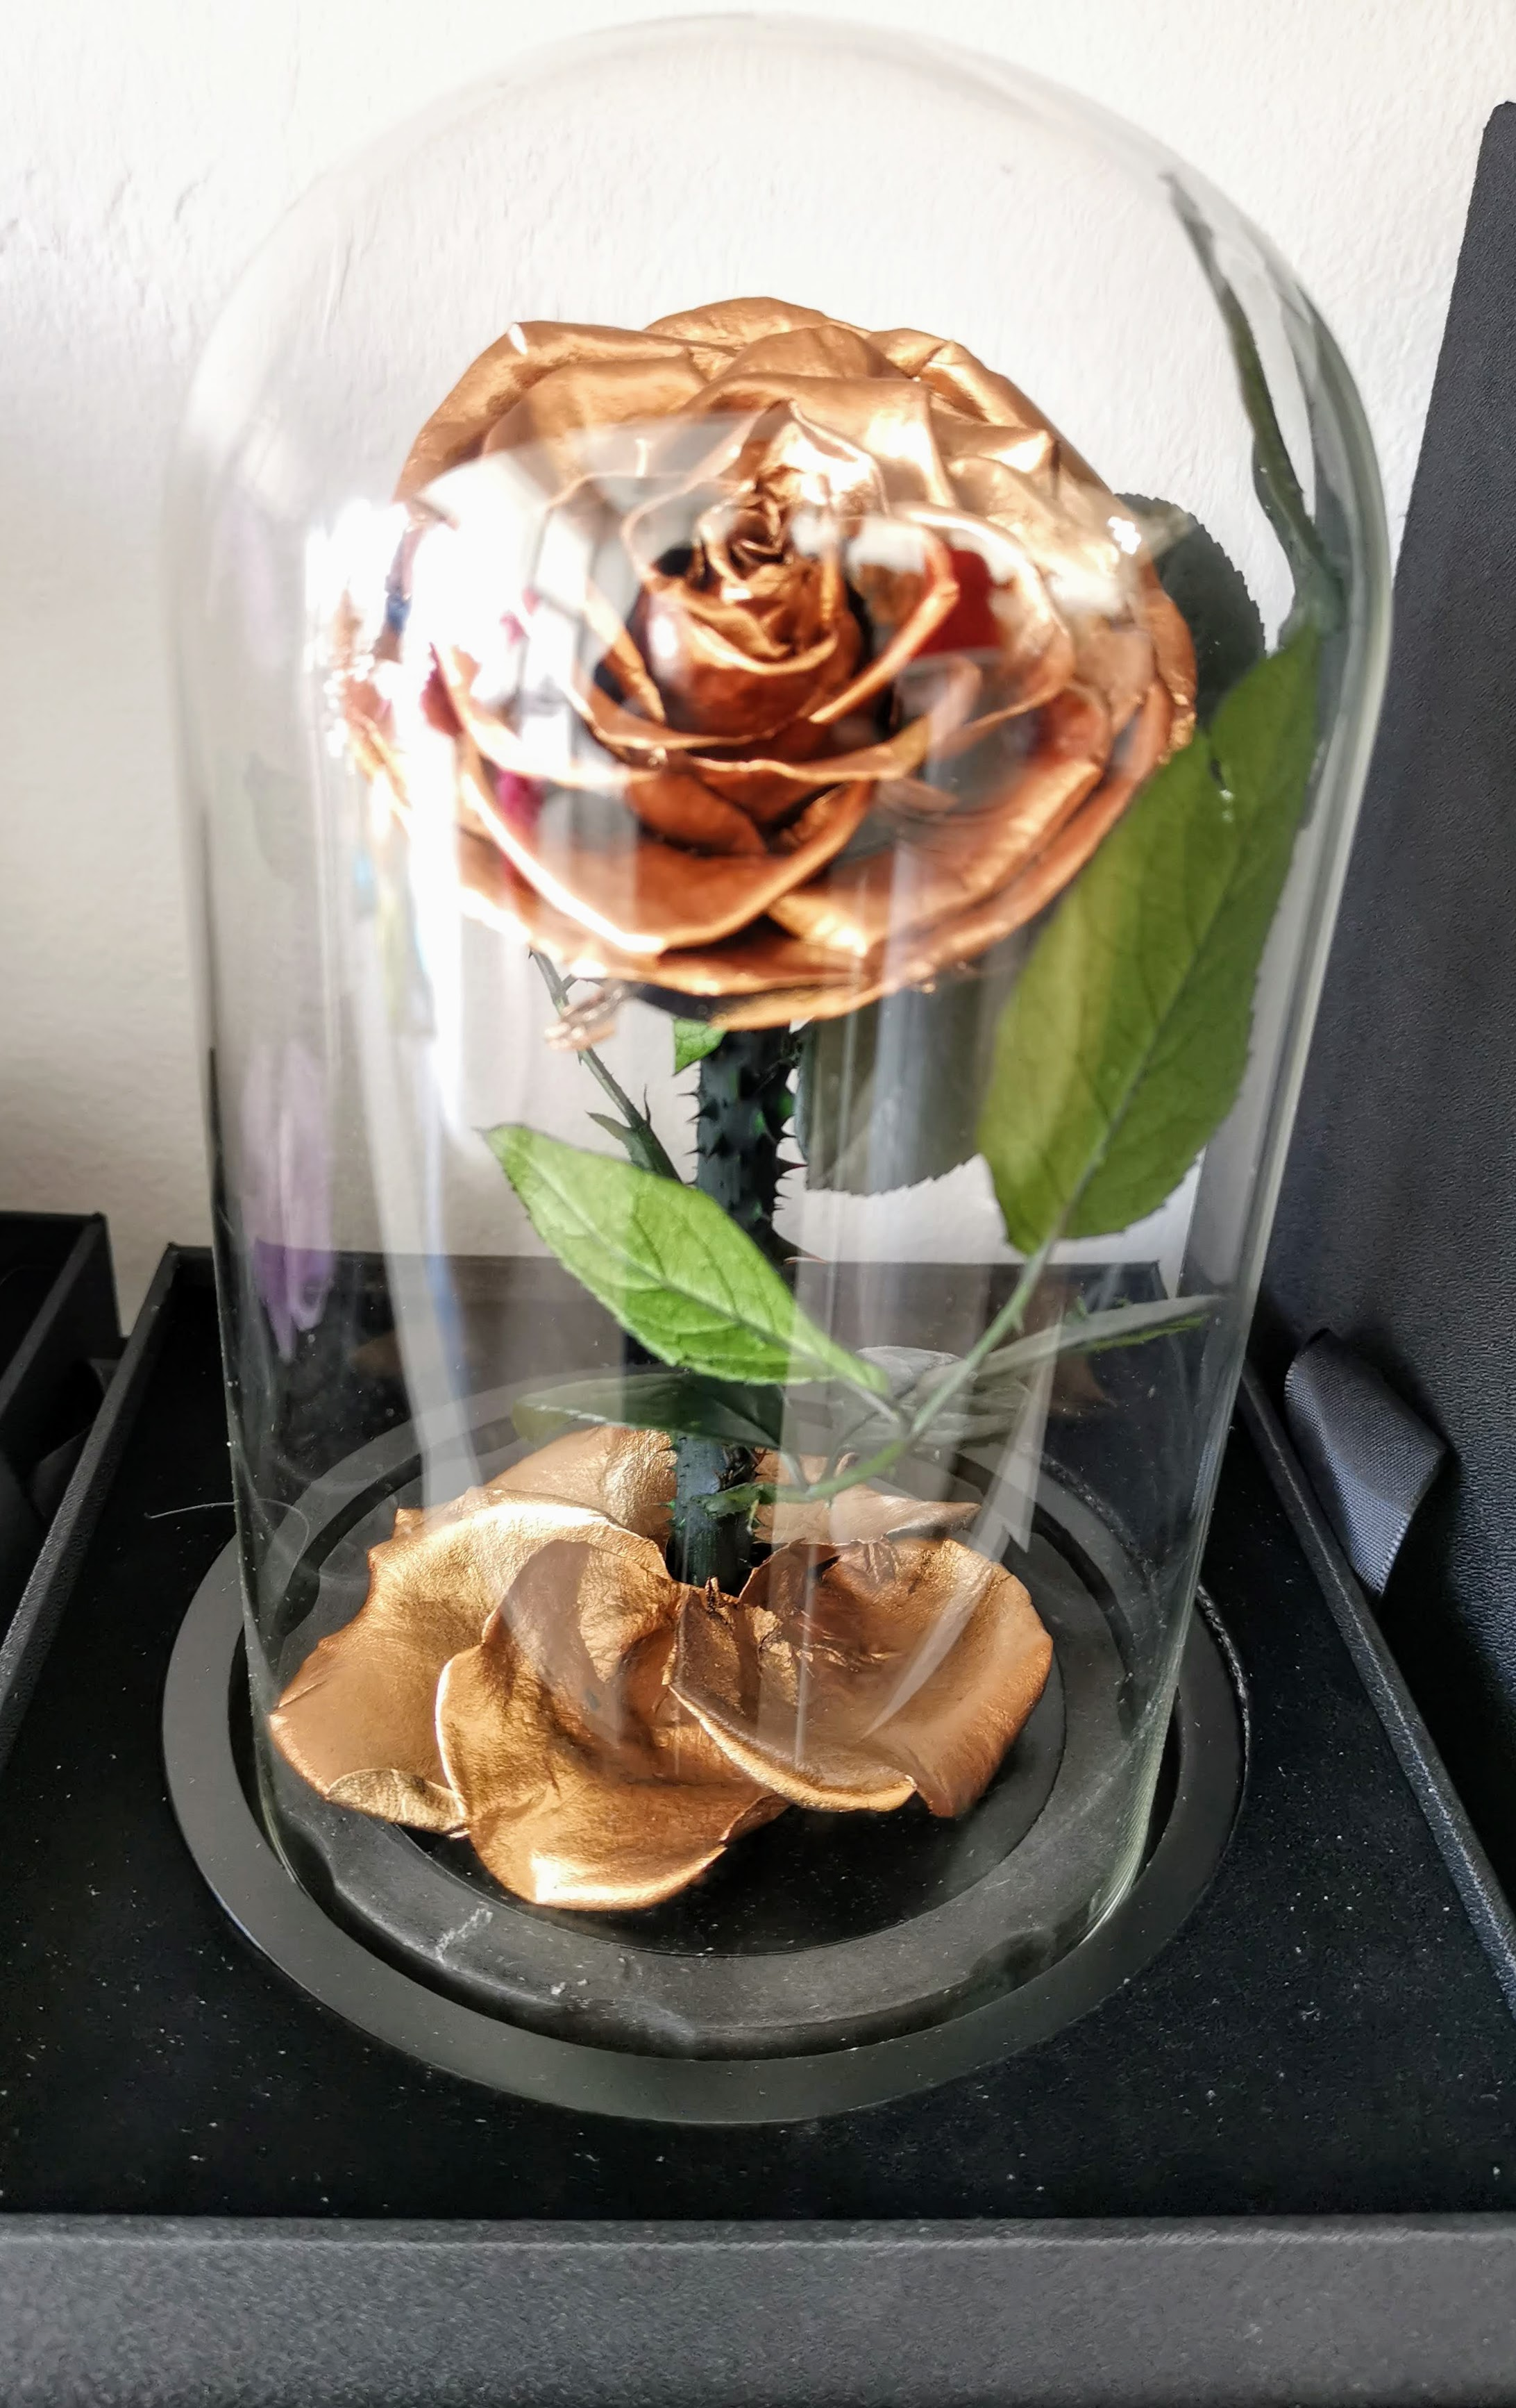 Eternity Forever Preserved Rose in a Class Dome - Gold